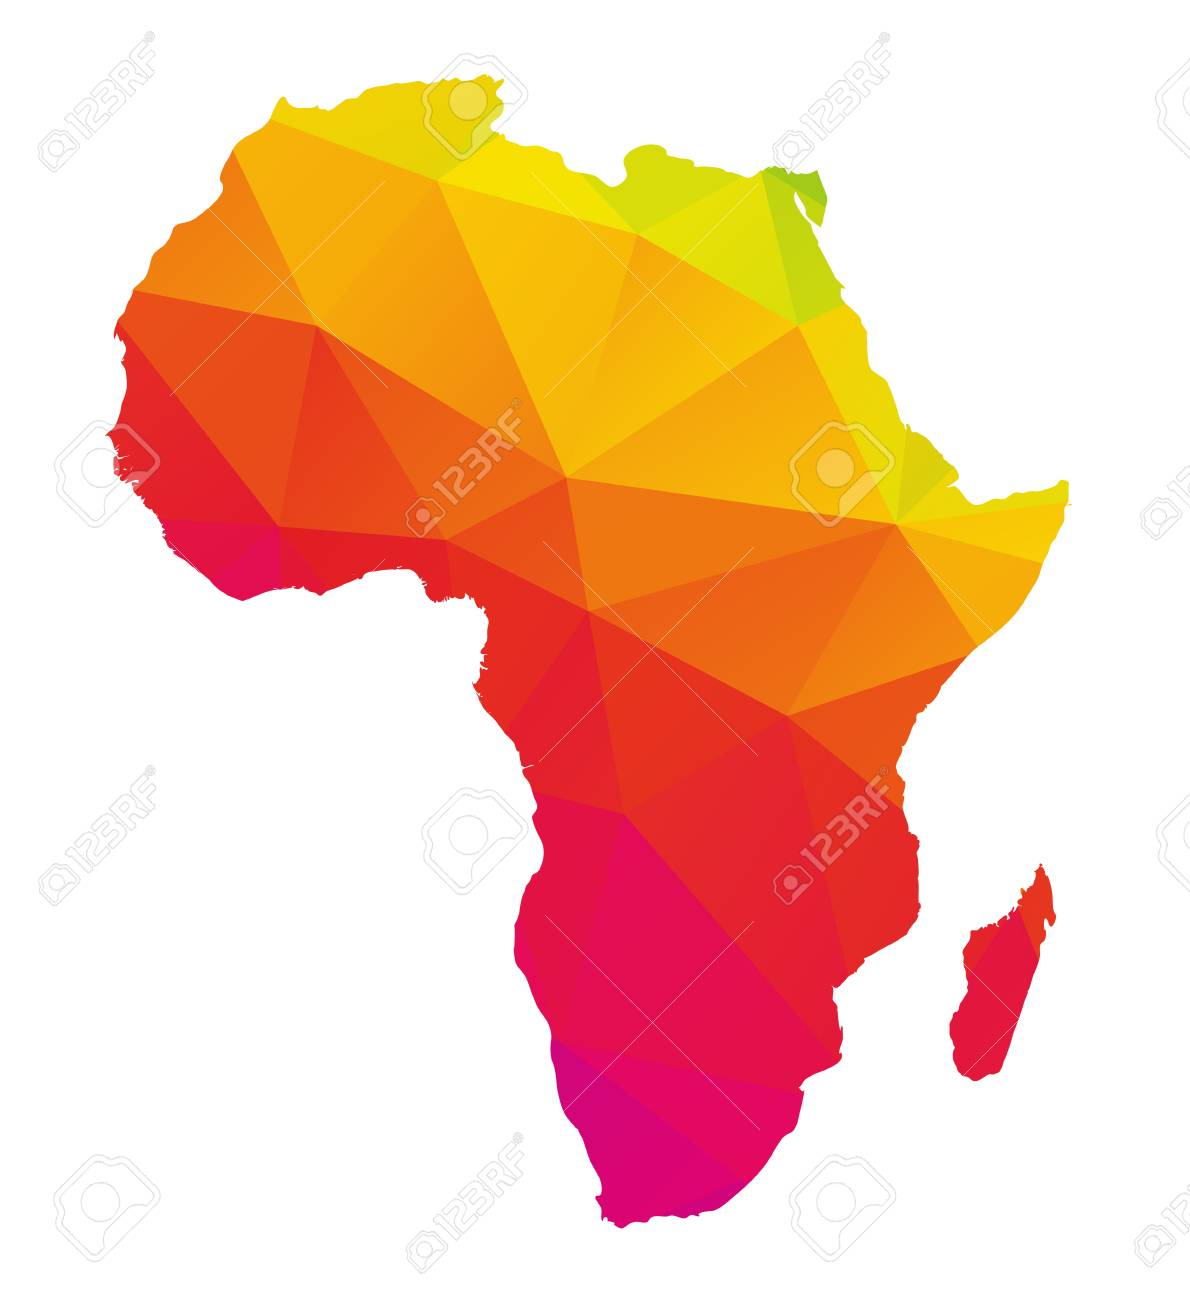 Colorful Map Of Africa.Colorful Polygonal Map Of Africa With Madagascar Geometry Cartography